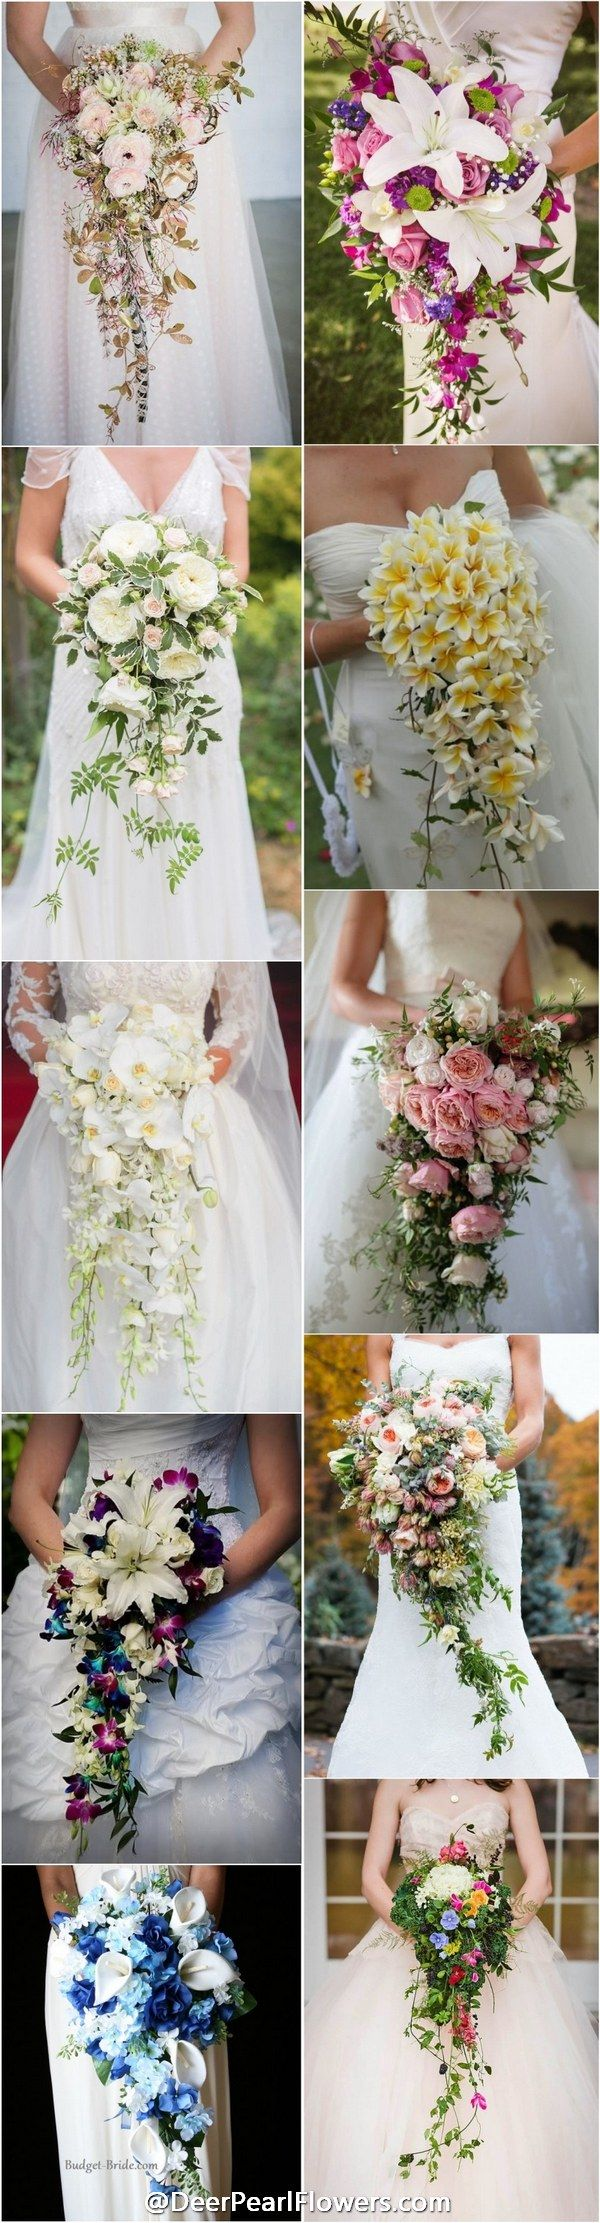 30 Stunning Cascading Wedding Bouquets | Flower, Wedding and Wedding